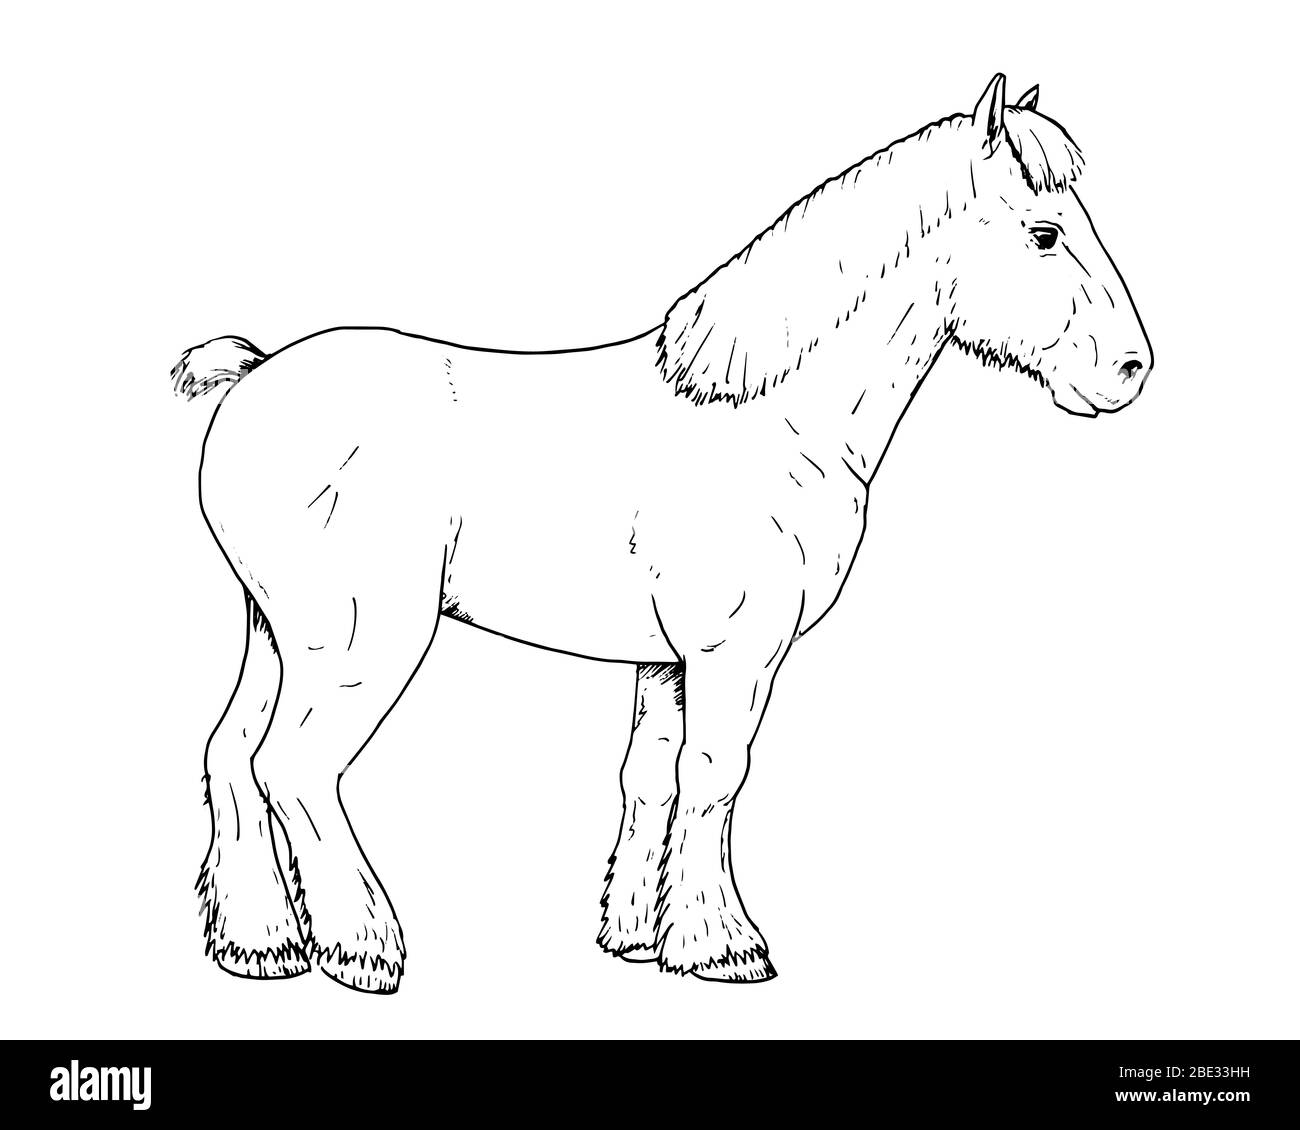 Drawing Of Dutch Draft Horse Hand Sketch Of Farm Animal Black And White Illustration Stock Vector Image Art Alamy